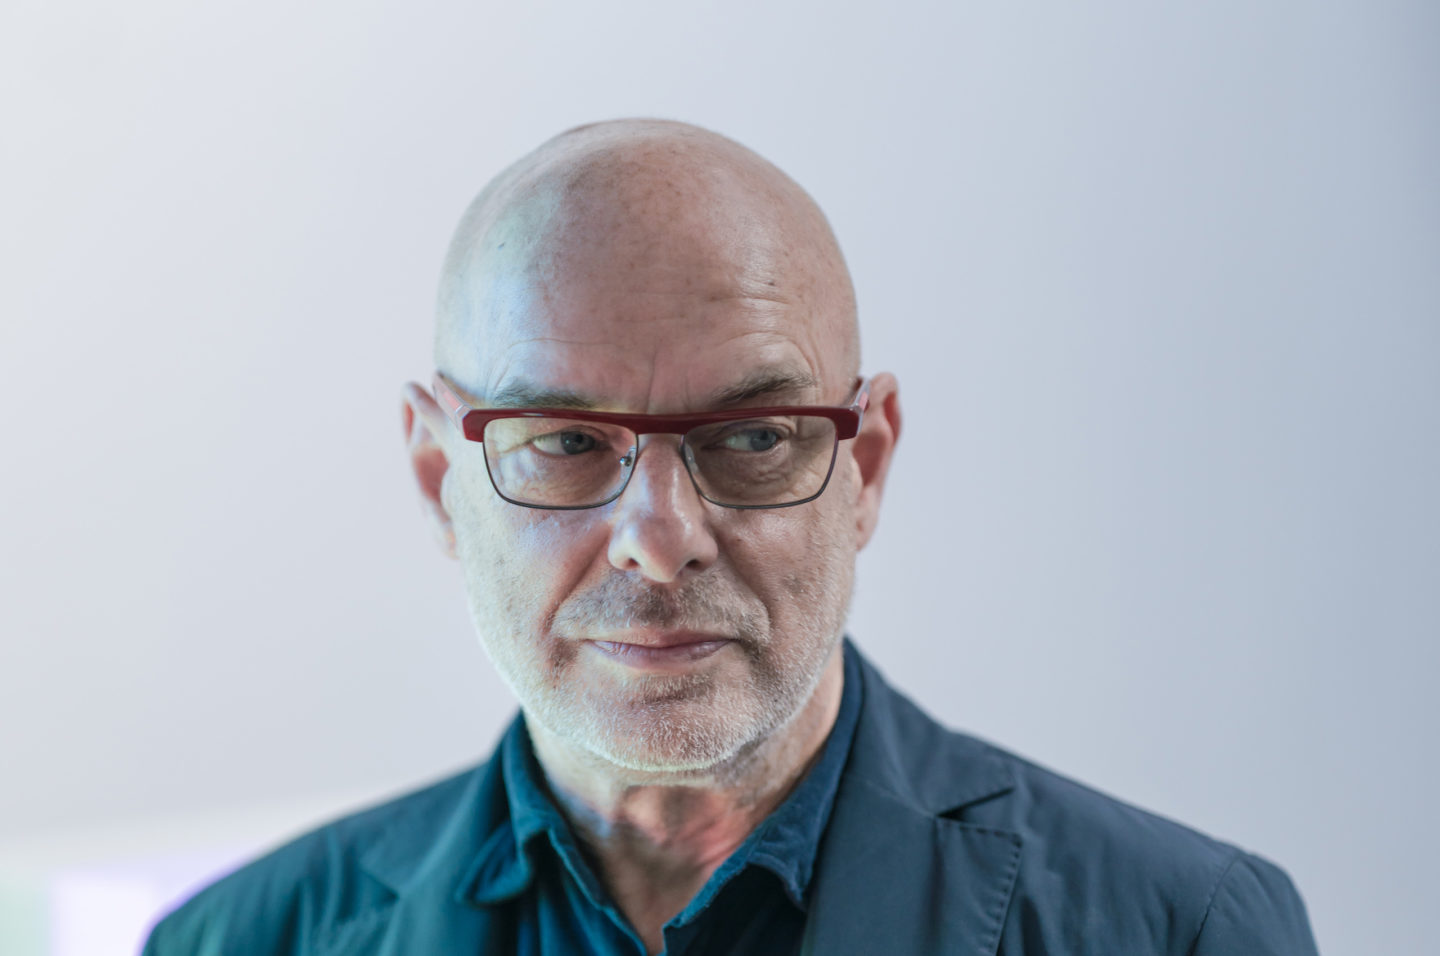 Brian Eno's thoughts for 2017